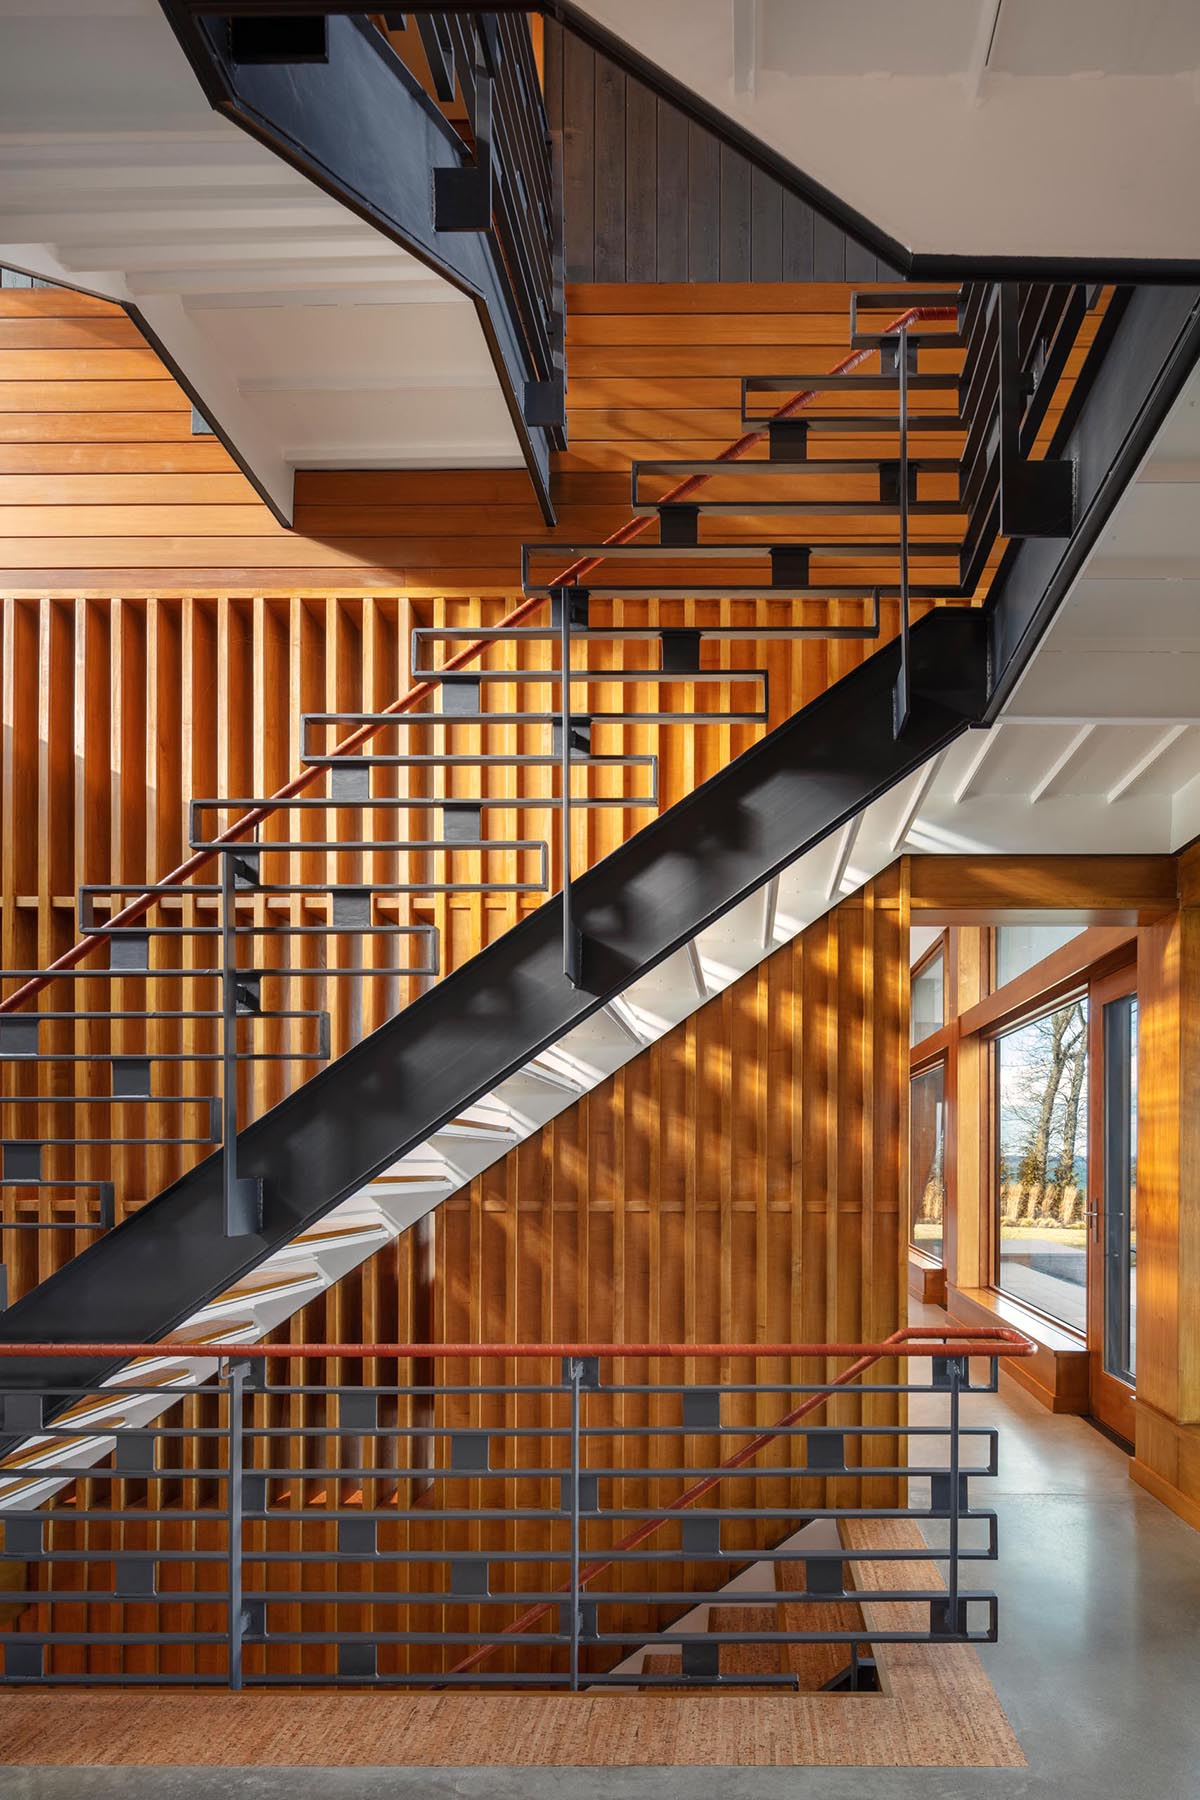 This modern staircase has a decorative metal railing as well as a leather wrapped handrail.